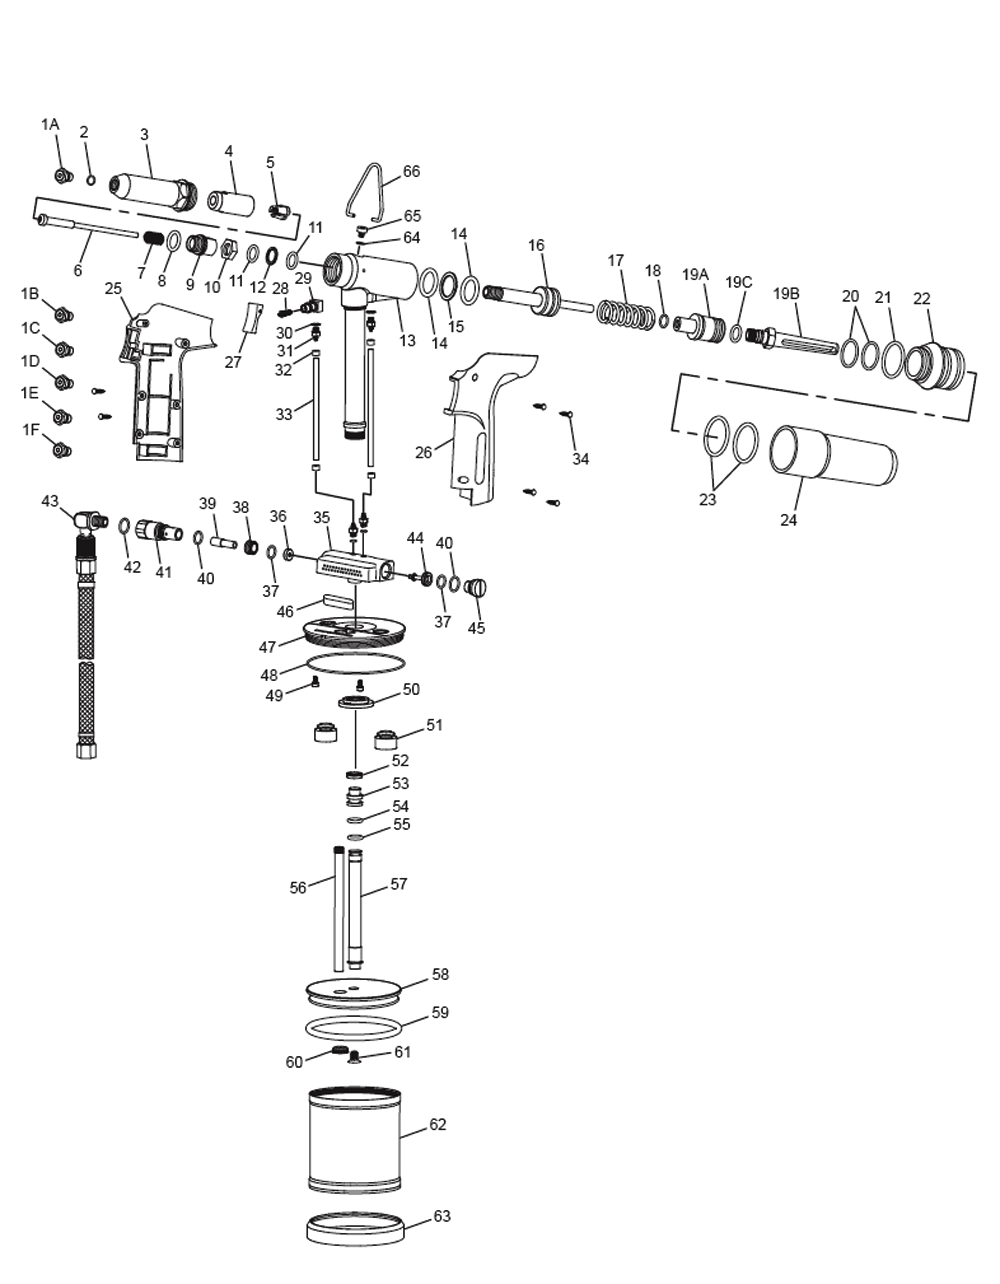 Pneumatic Counter Schematic Part : Buy chicago pneumatic cp heavy duty air riveters